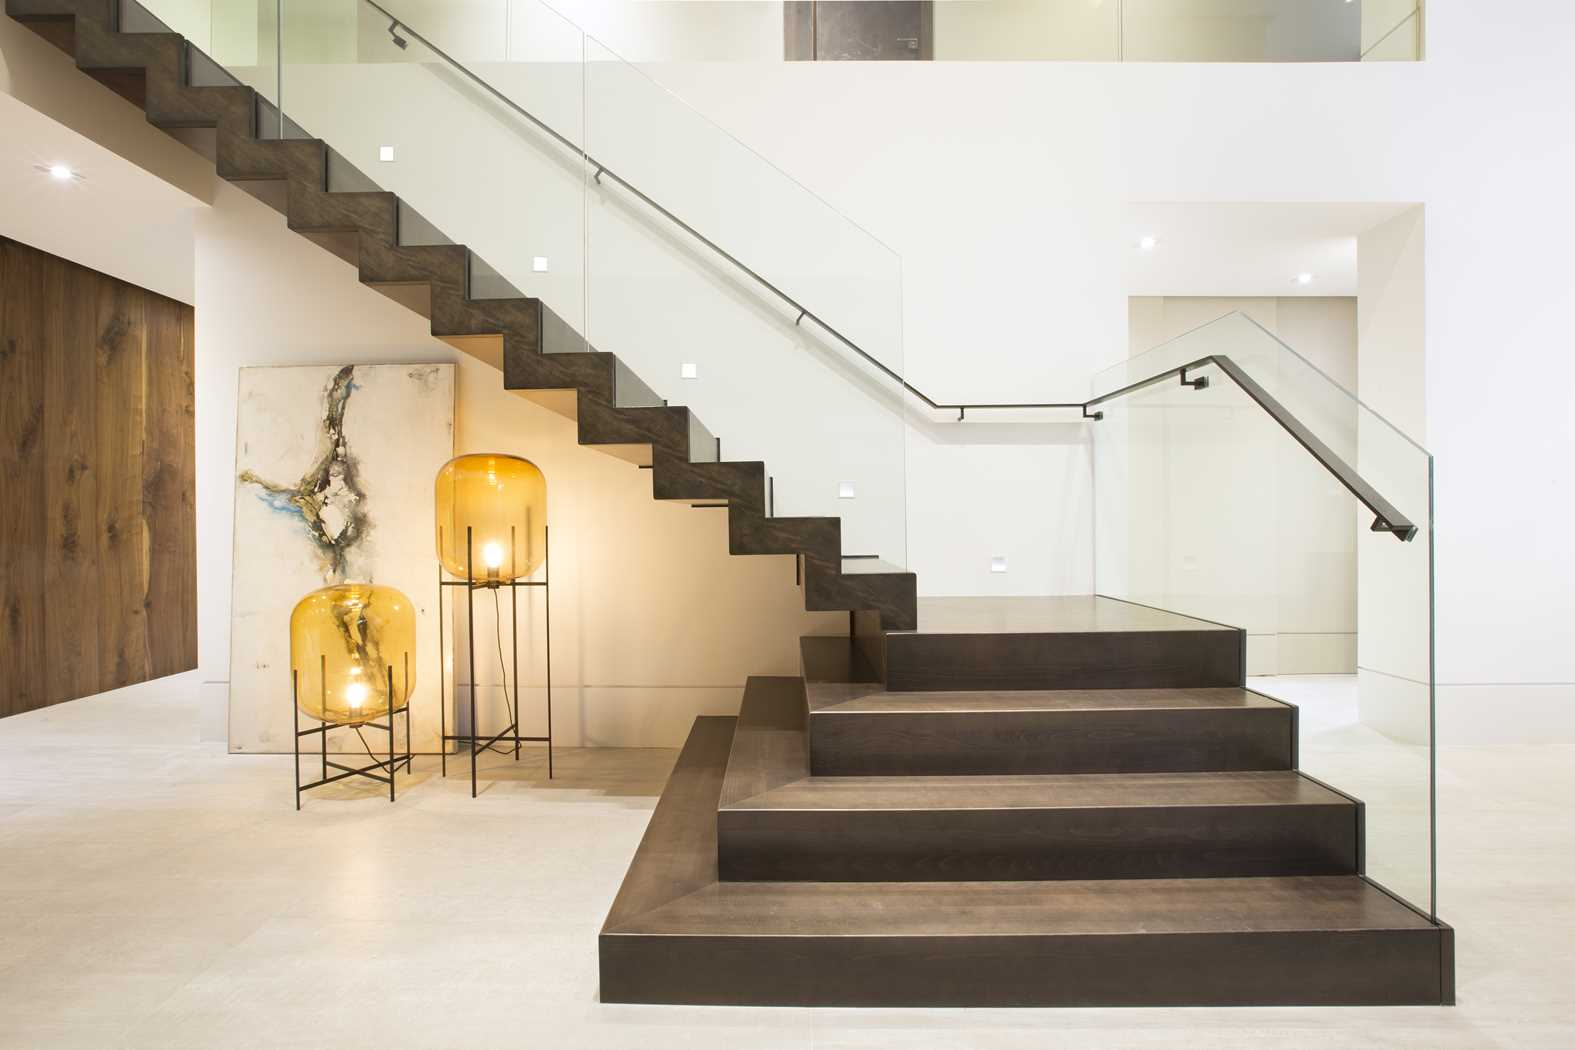 Best 25 Modern Staircase Ideas On Pinterest: 12 Modern Staircases And Railings